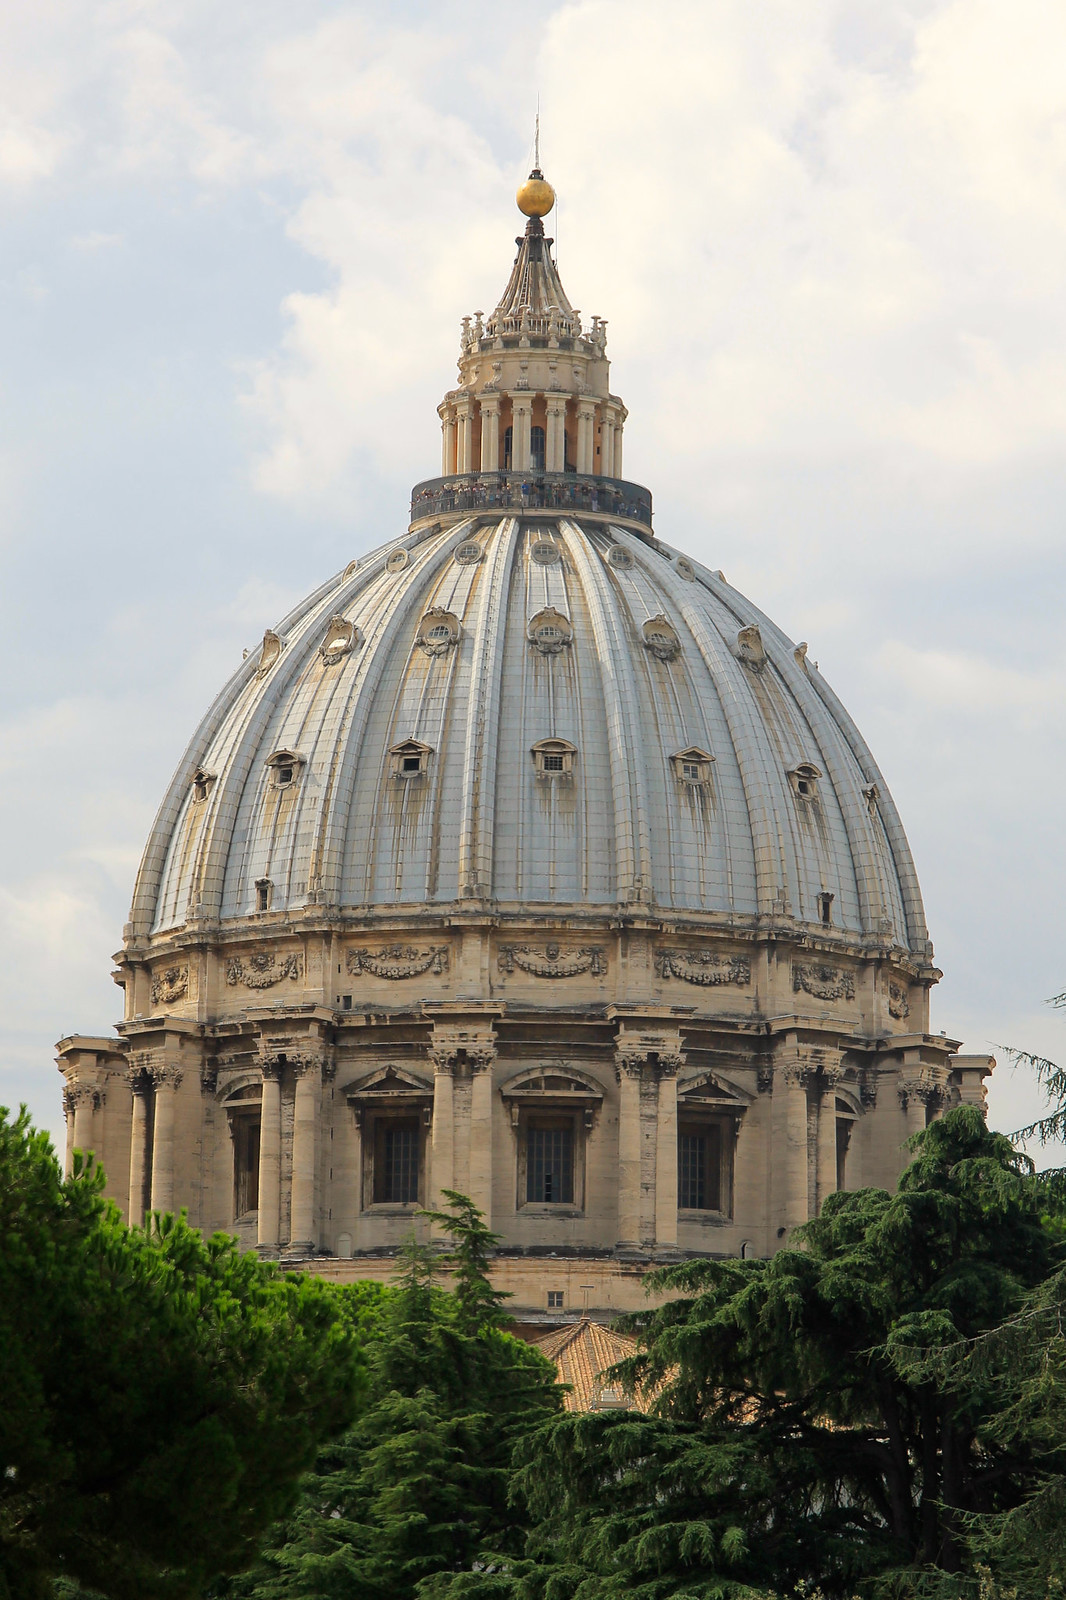 The Vatican City Rome Italy UK travel blogger